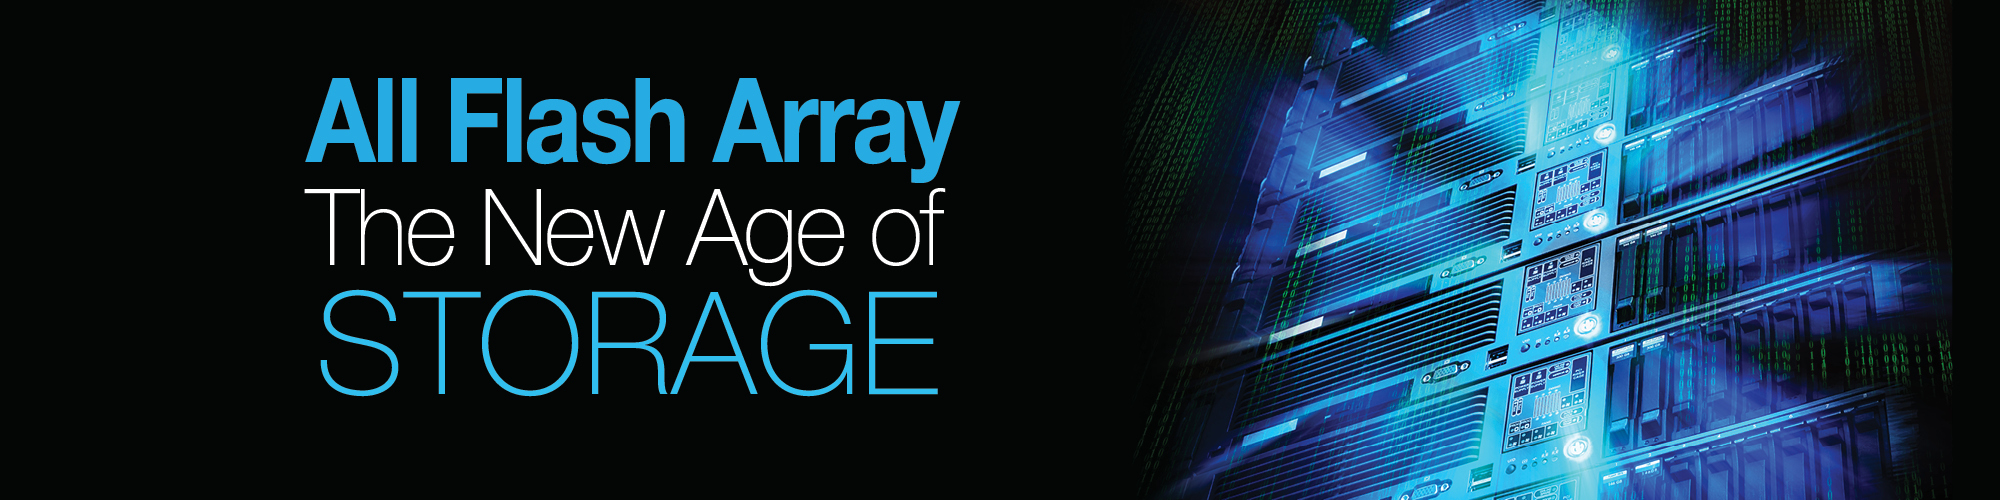 All Flash Array, The New Age of Storage   banner